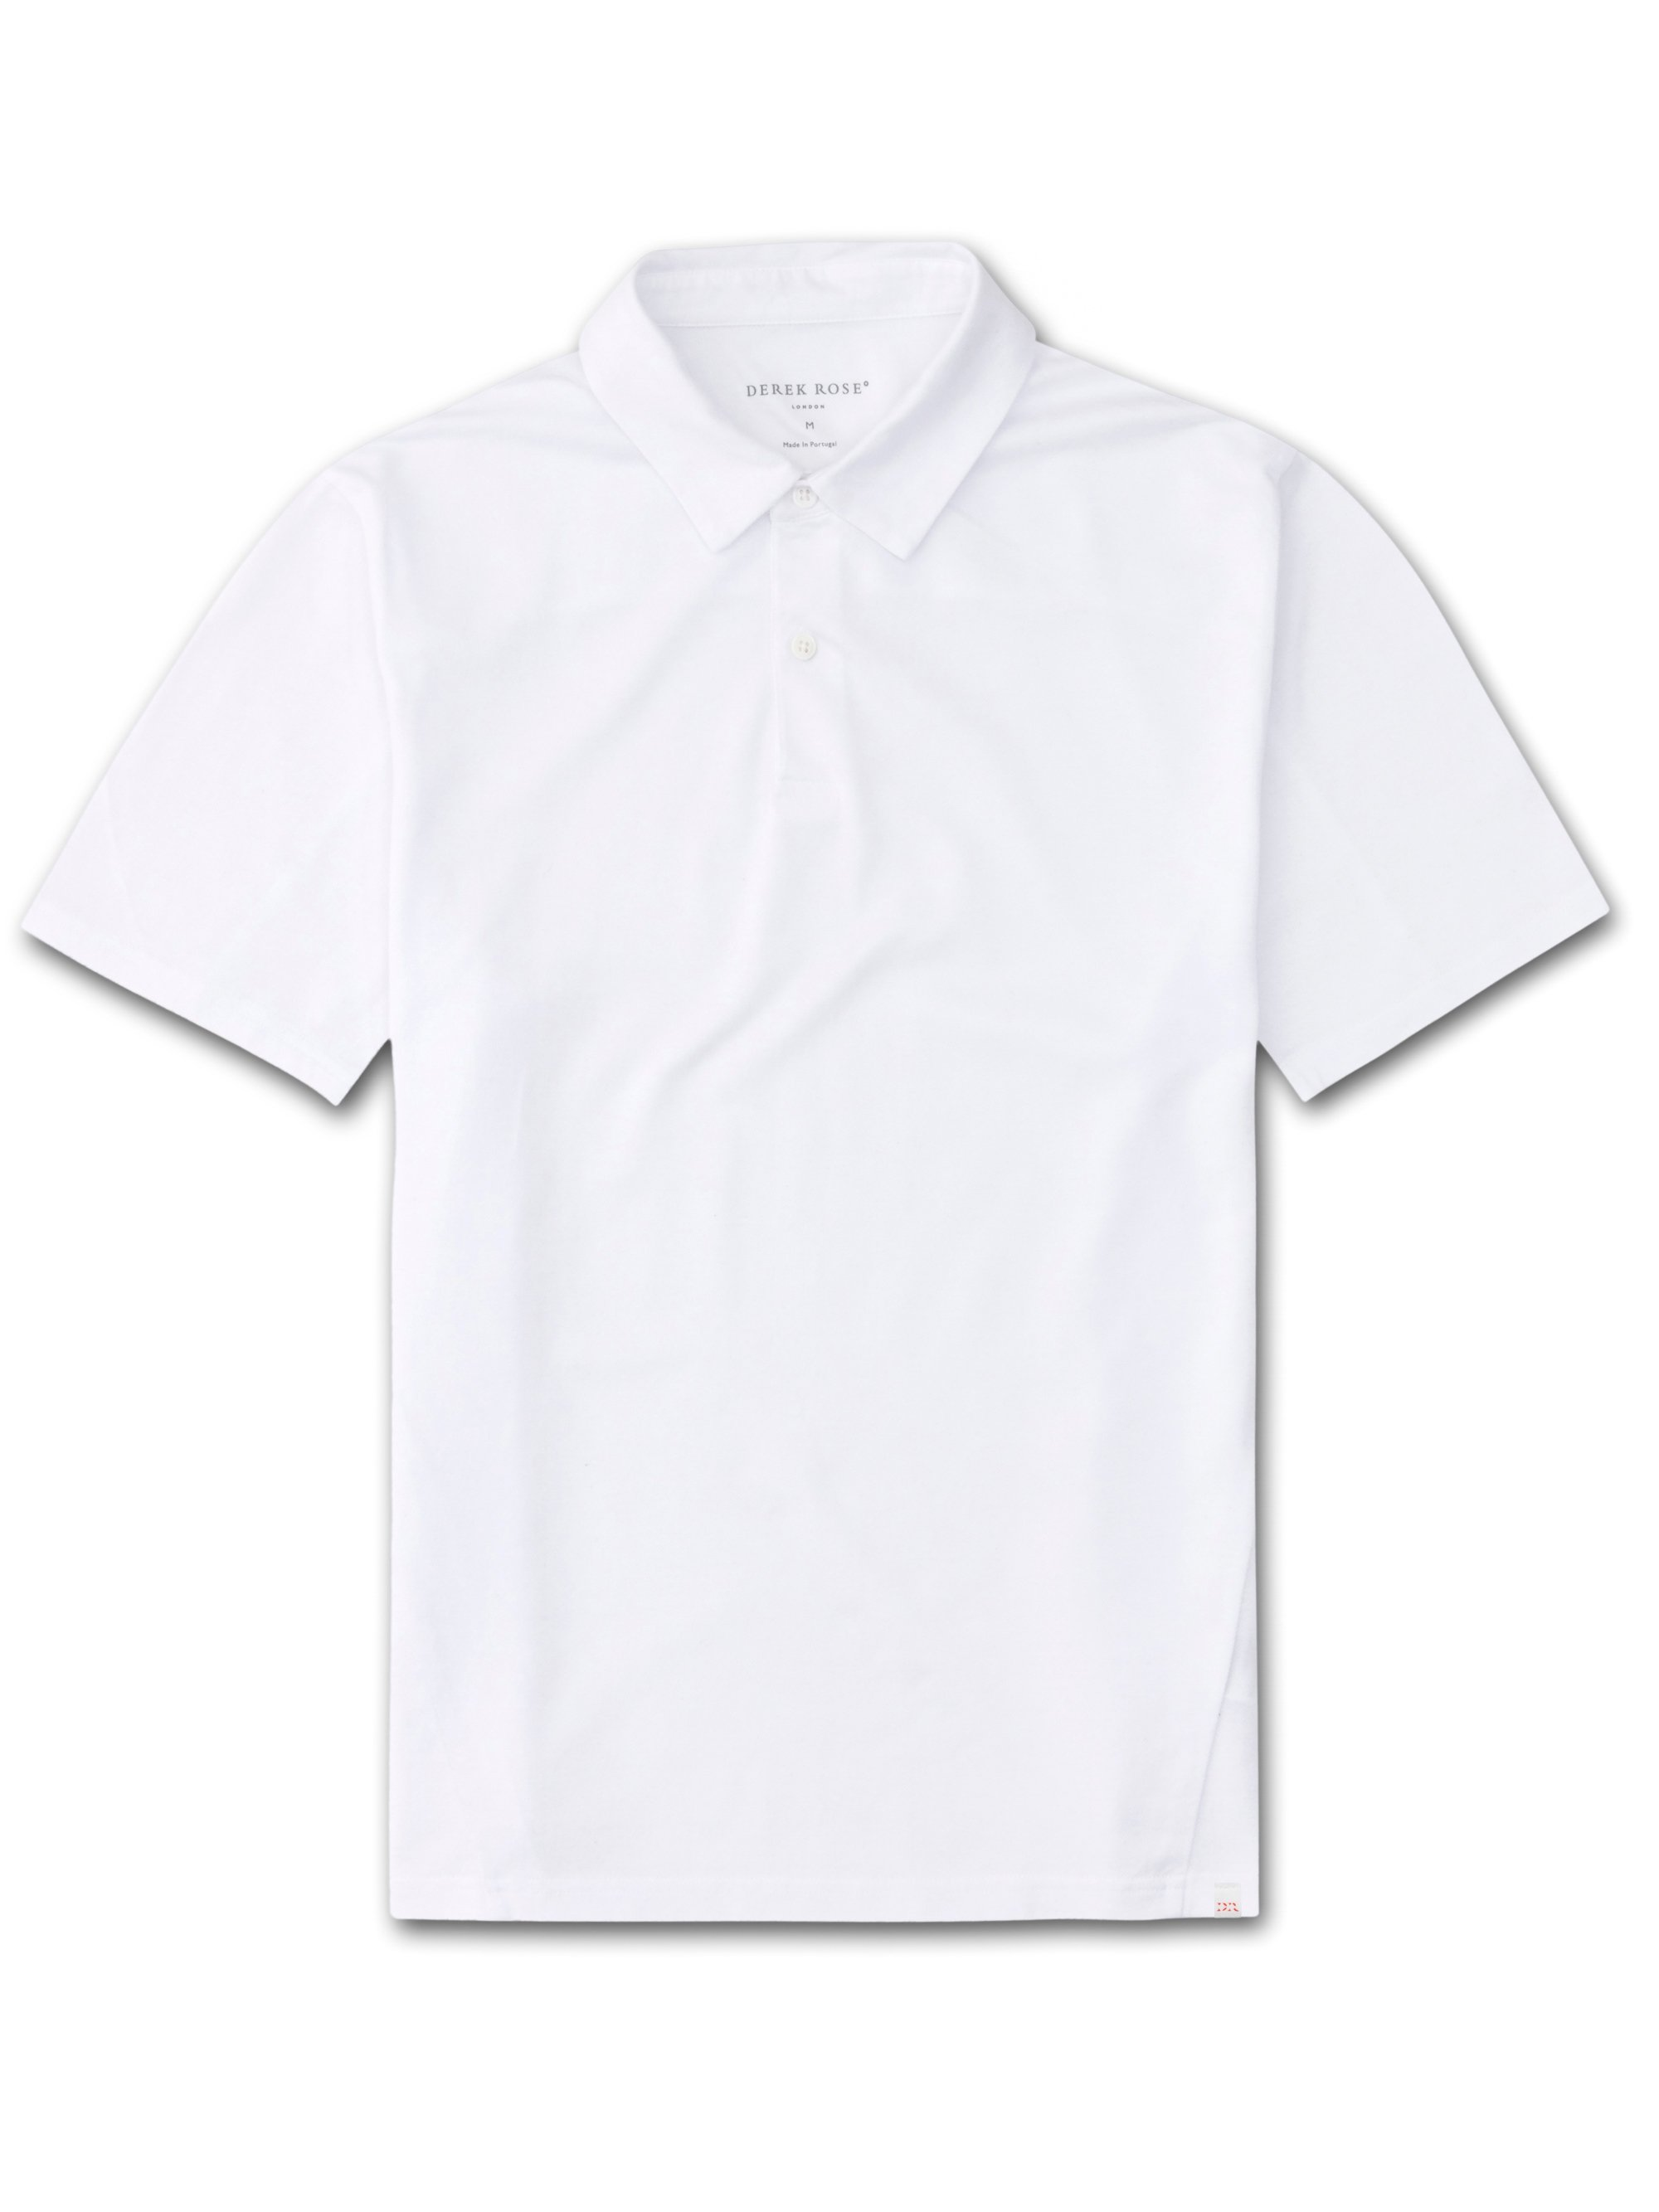 Men's Short Sleeve Polo Shirt Ramsay Pique Cotton Tencel White